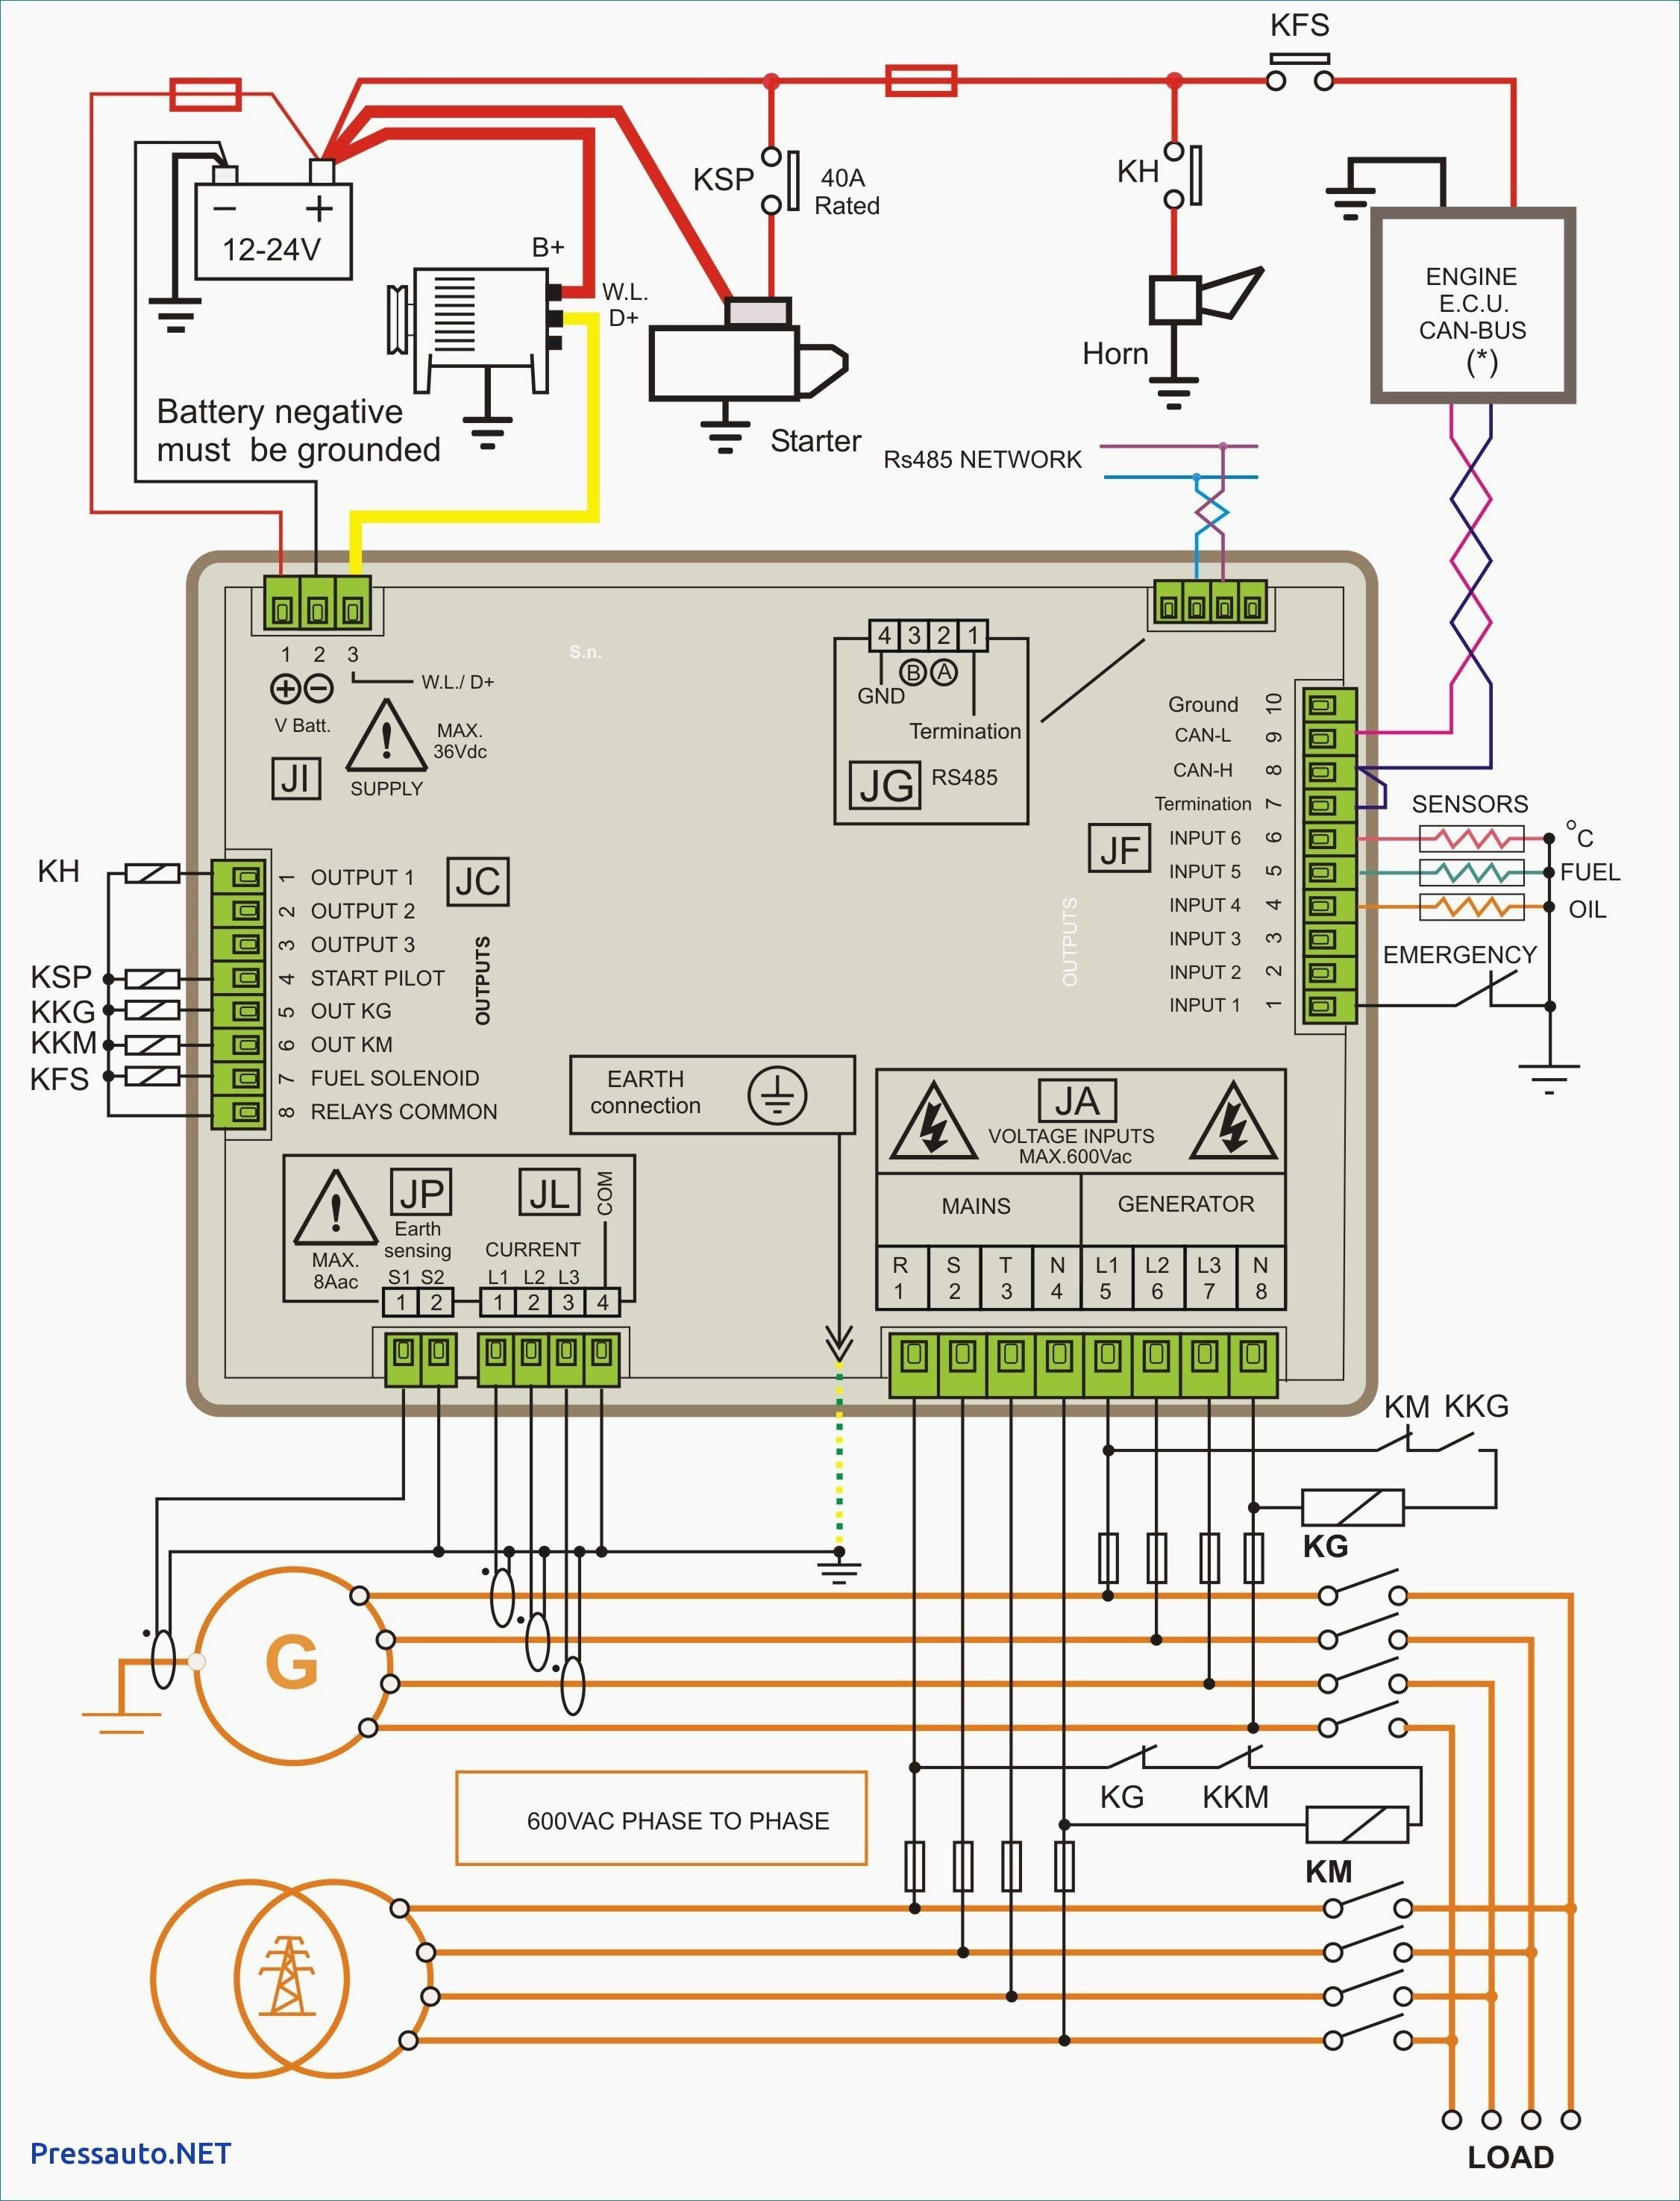 Aircraft Wiring Harness Drawing : Aircraft wiring diagram software download